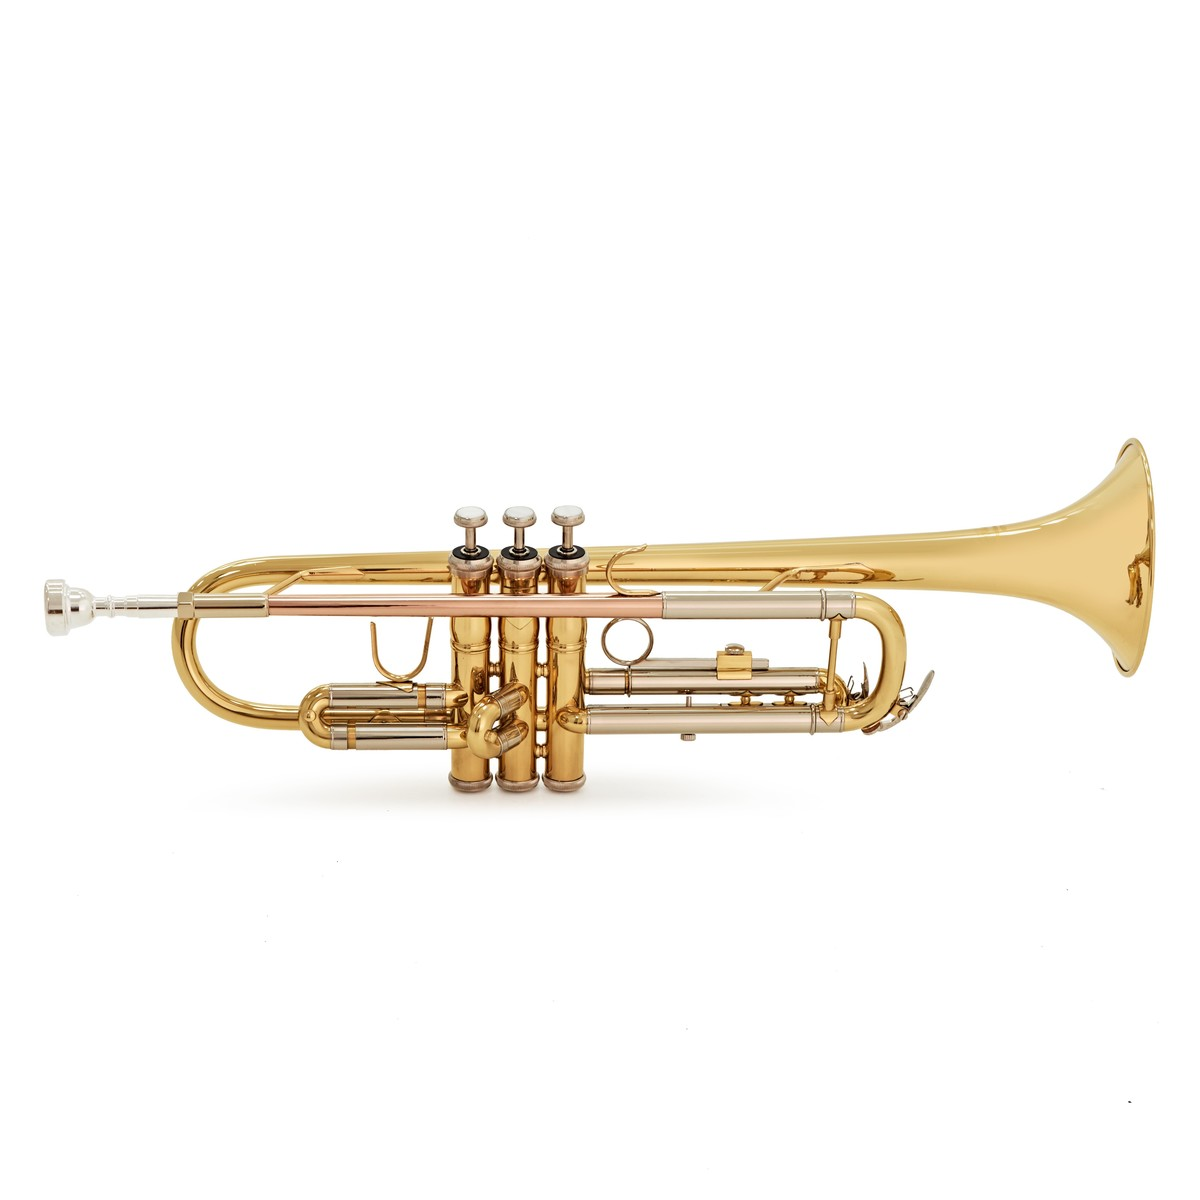 Elkhart 100TR Student Trumpet - Box Opened at Gear4music